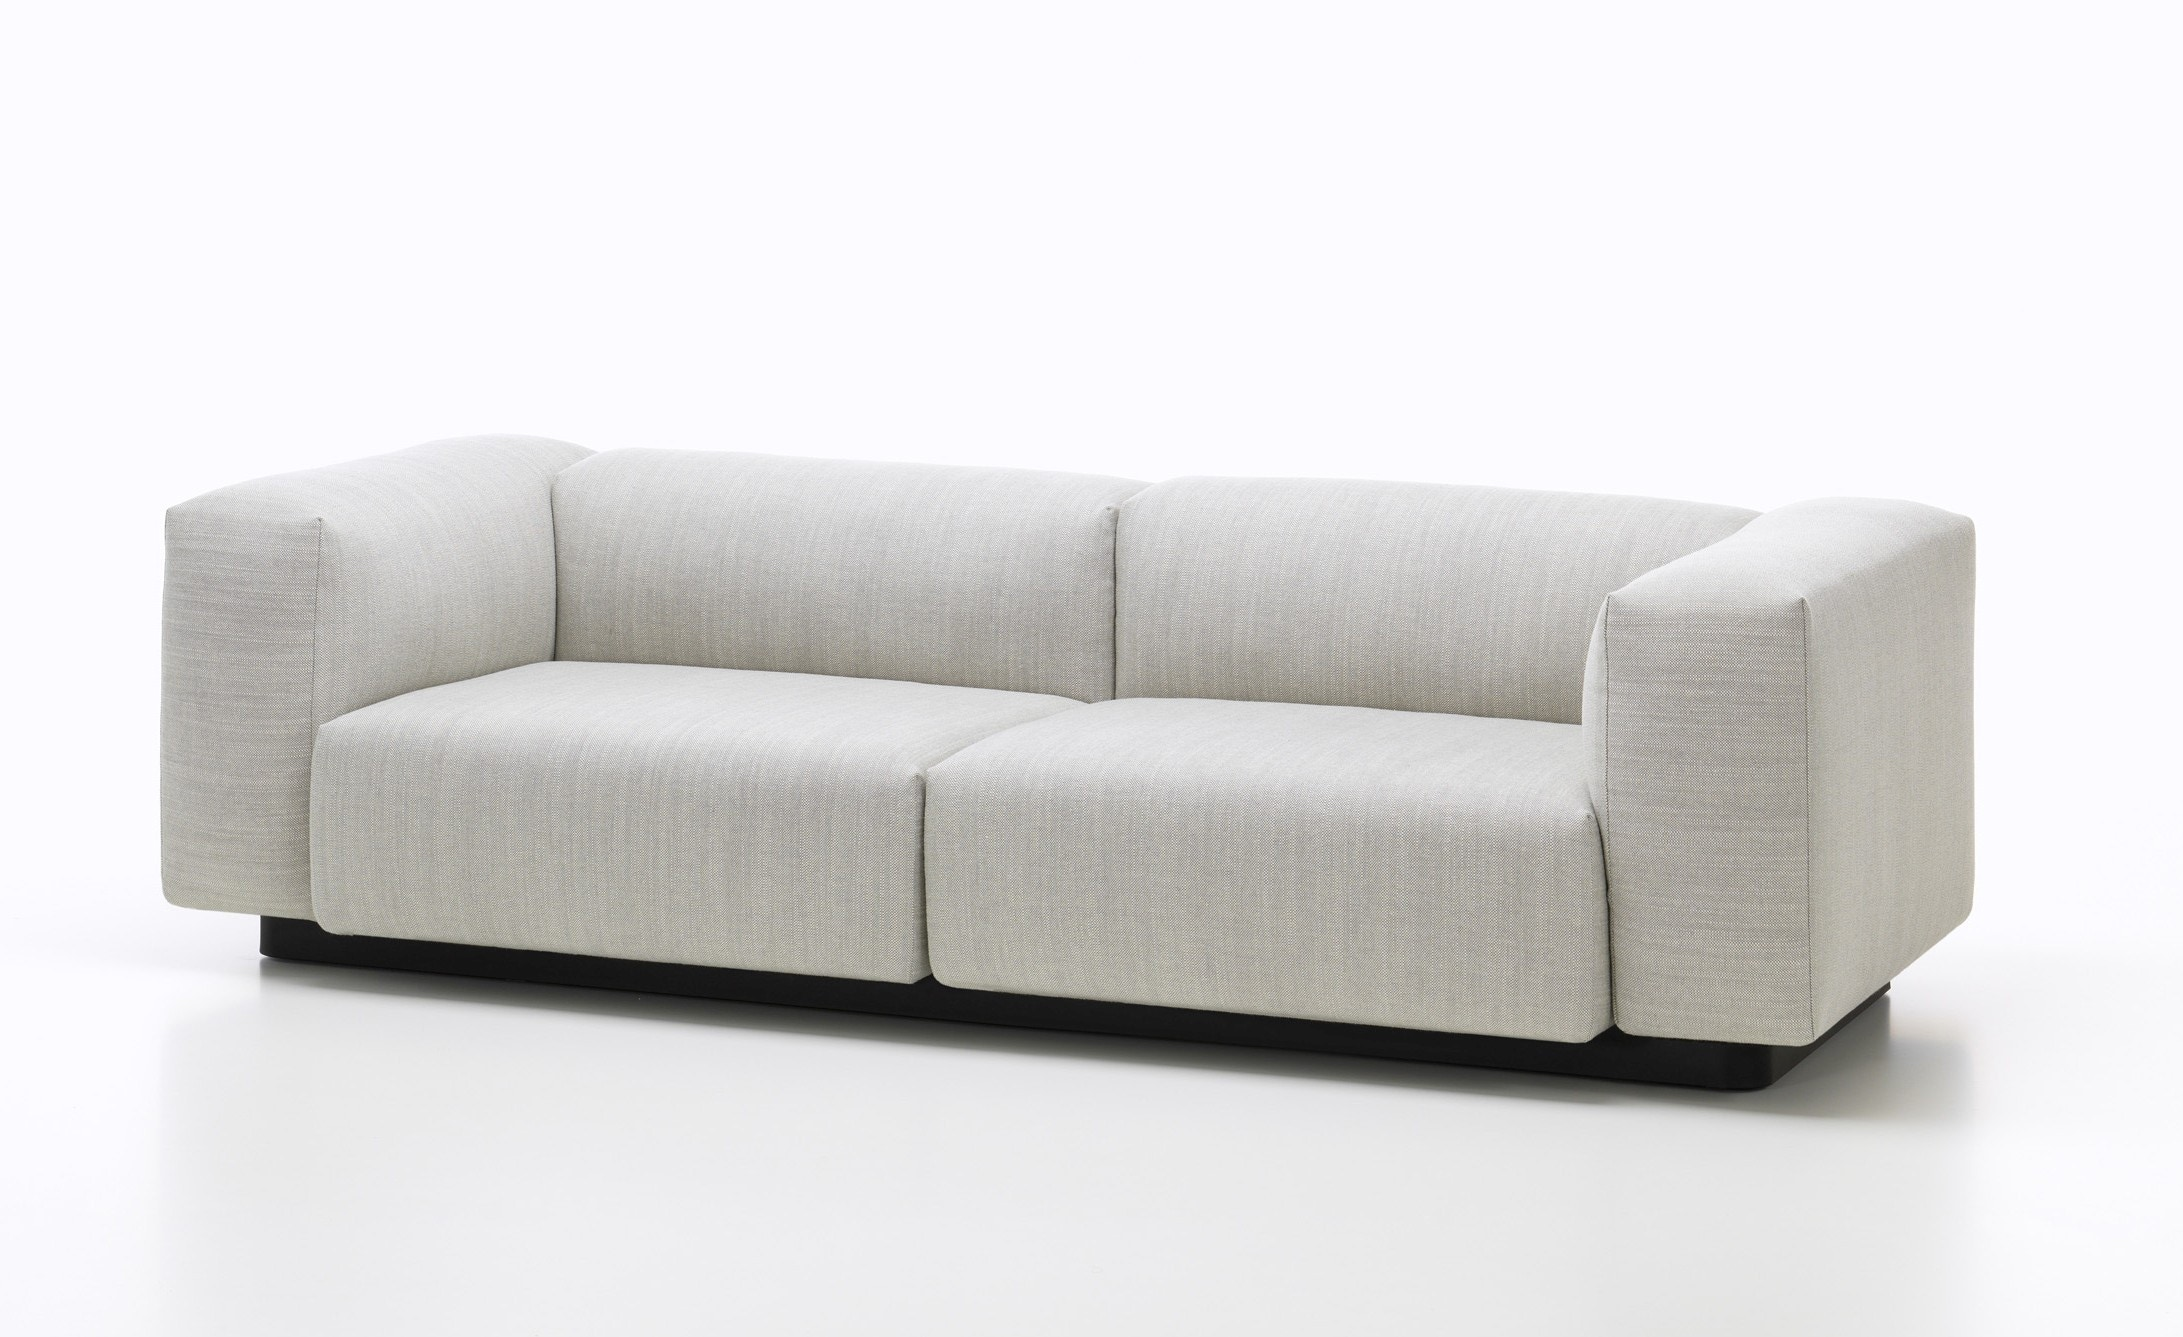 vitra soft modular sofa gr shop canada. Black Bedroom Furniture Sets. Home Design Ideas